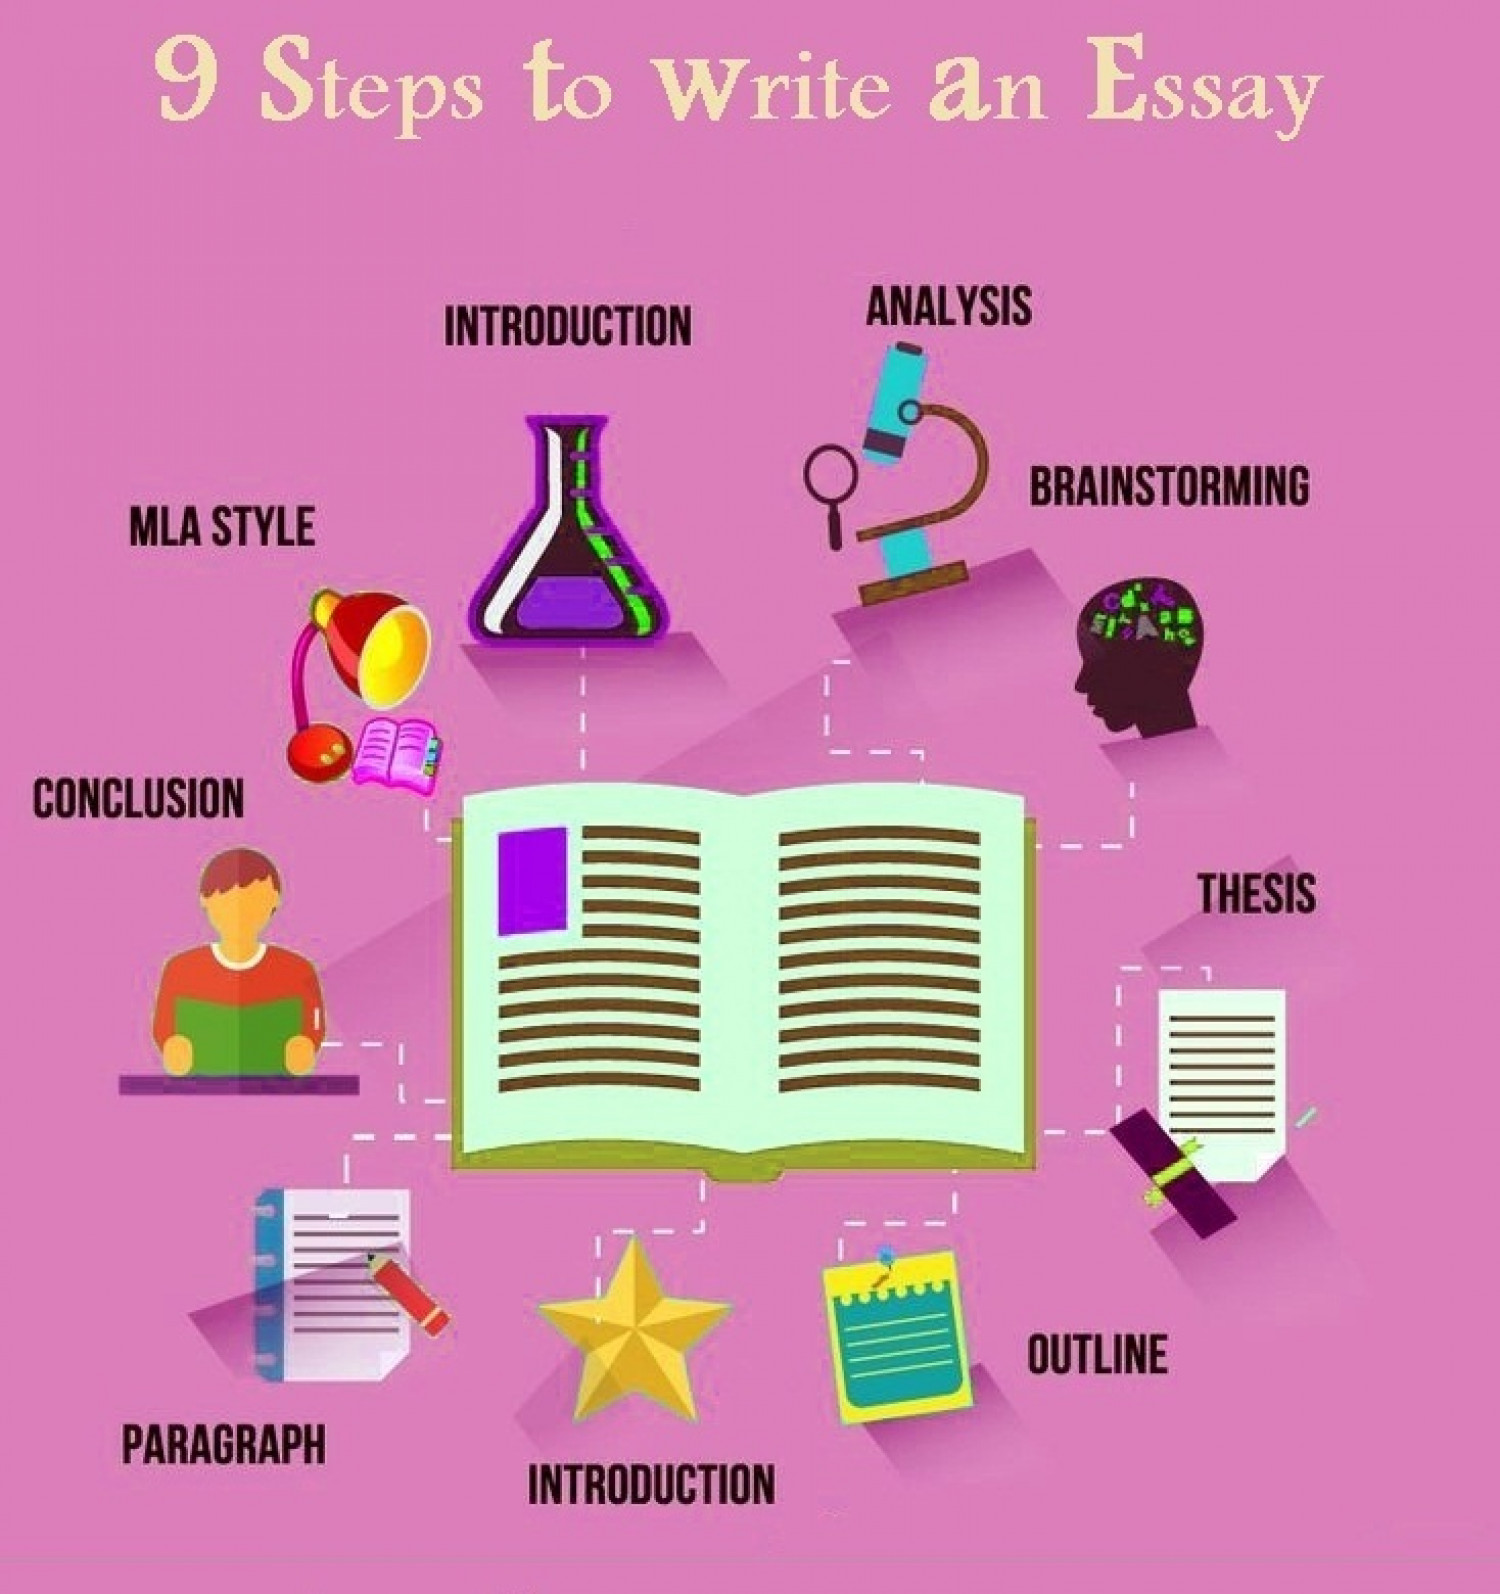 steps to write an essay how to write an admission essay steps